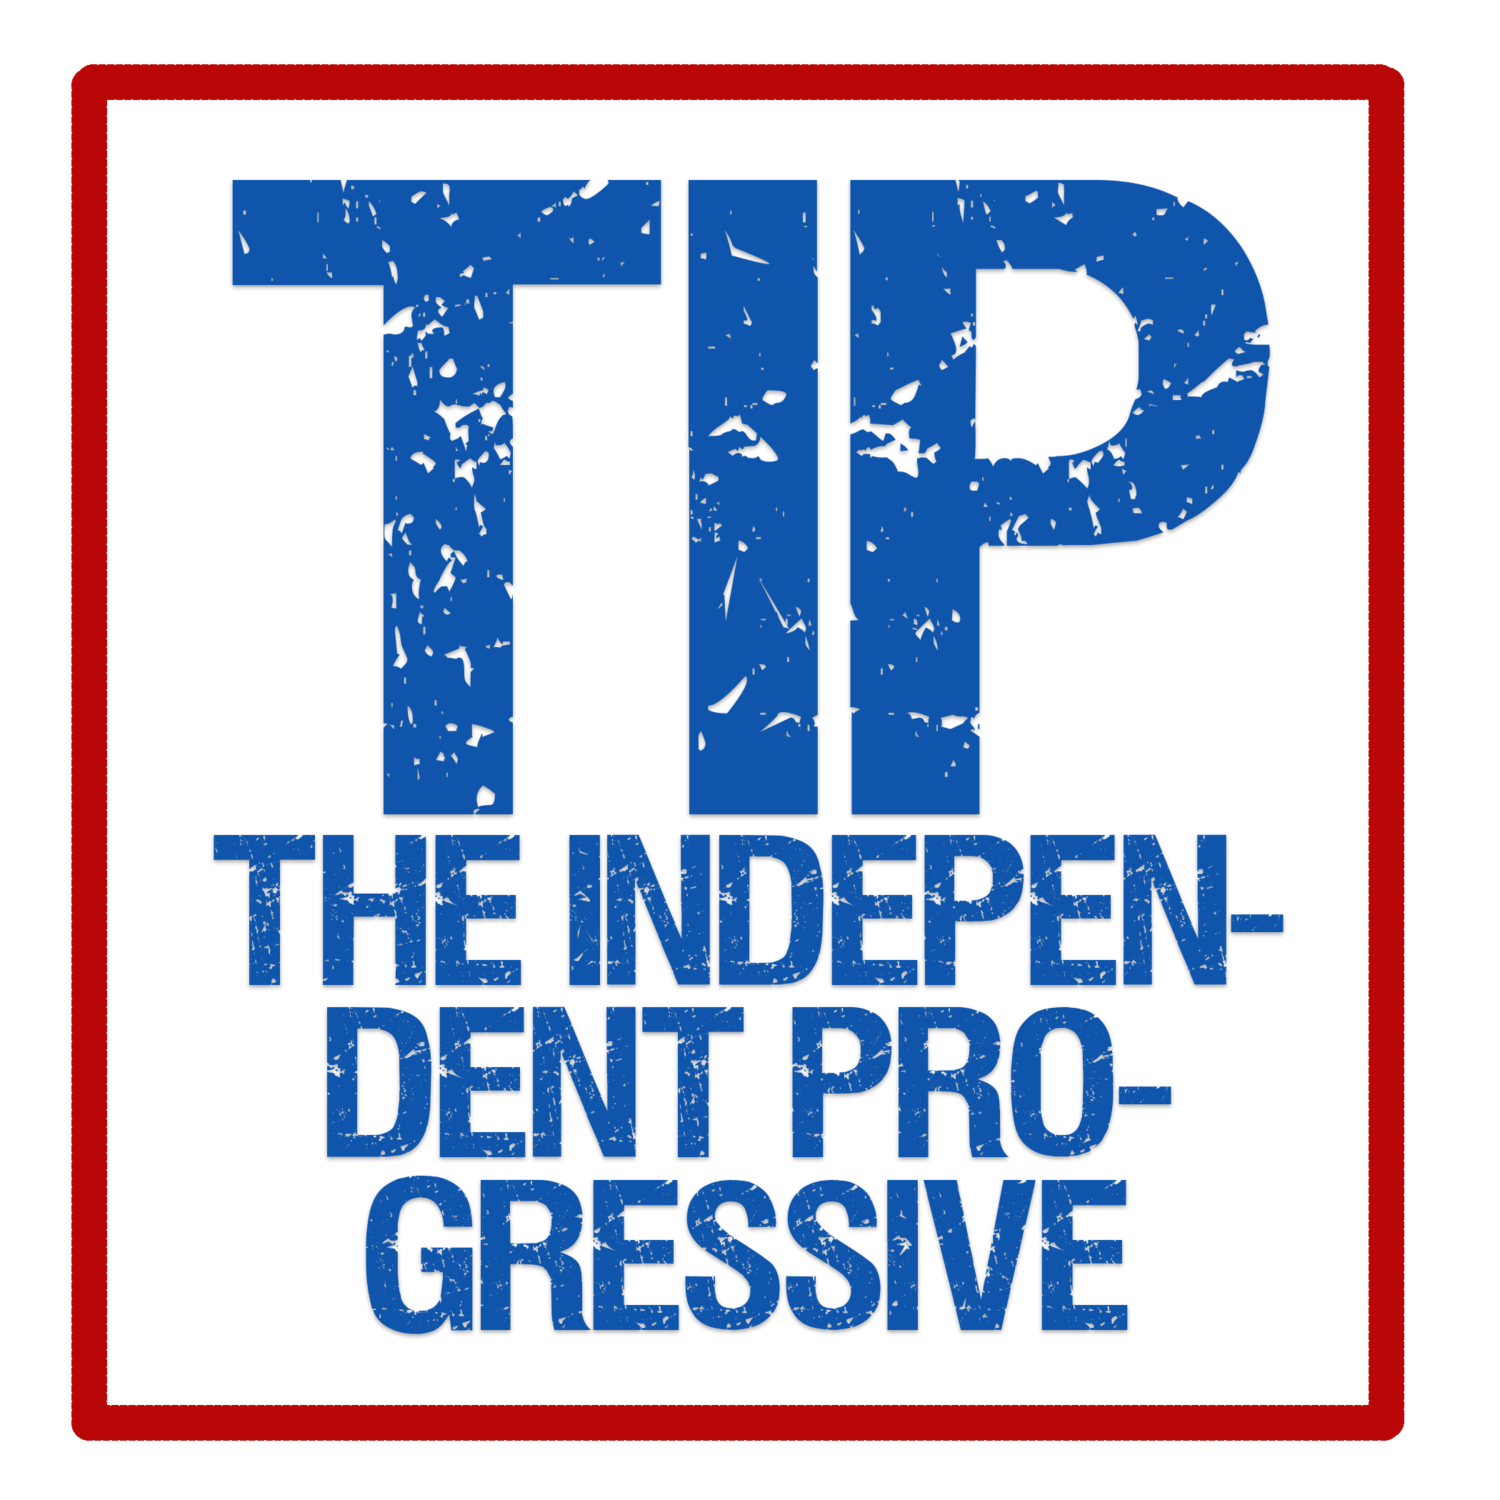 The Independent Progressive